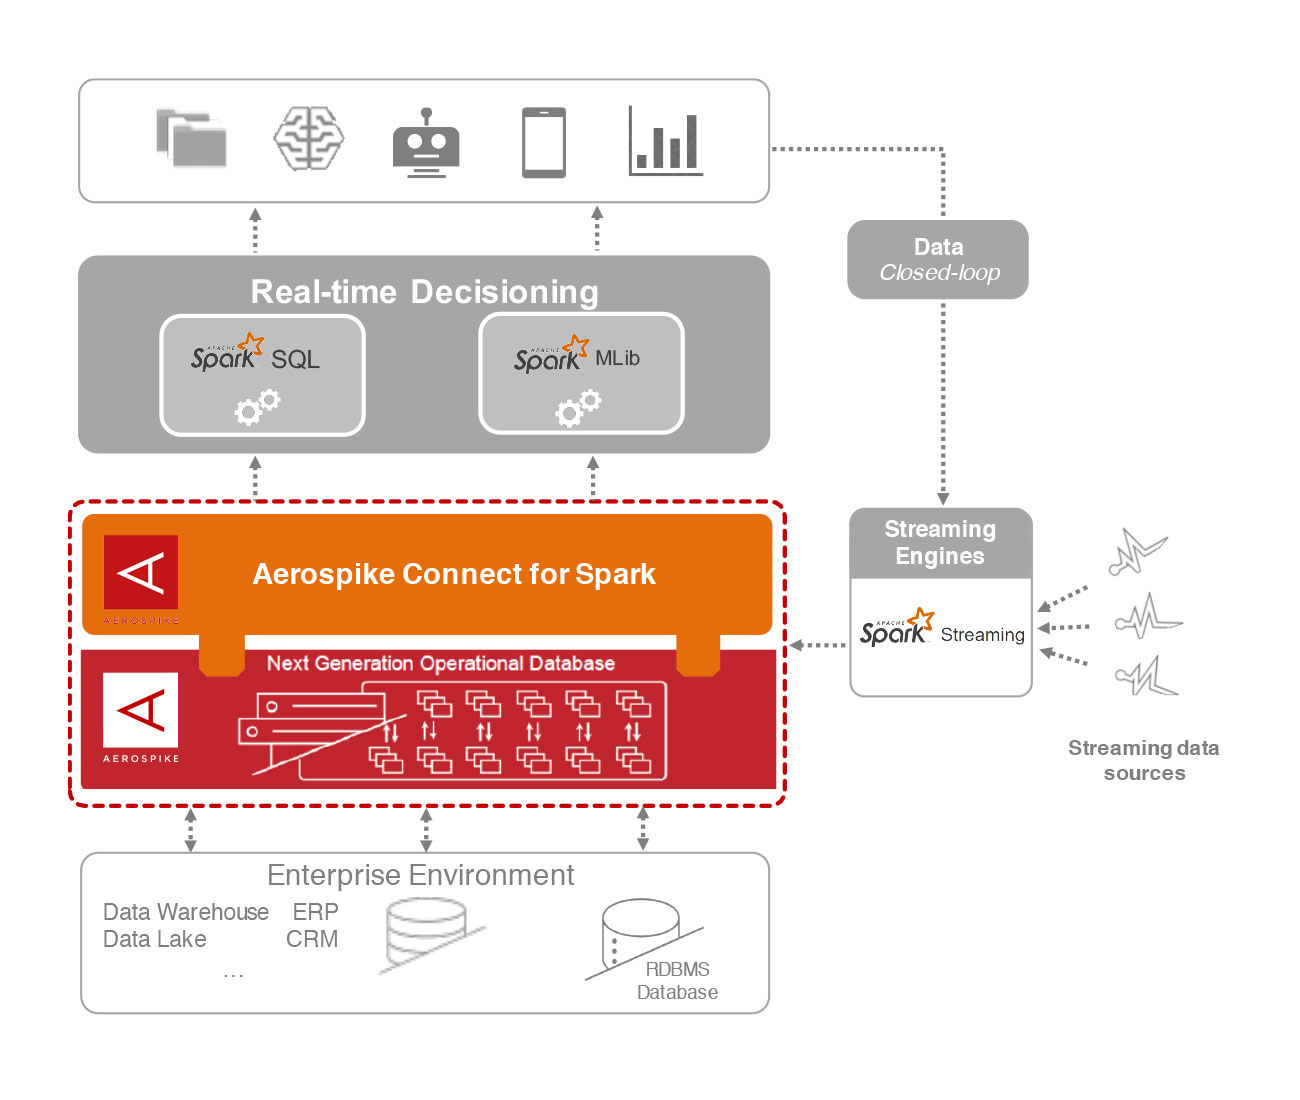 Aerospike Connect for Spark diagram